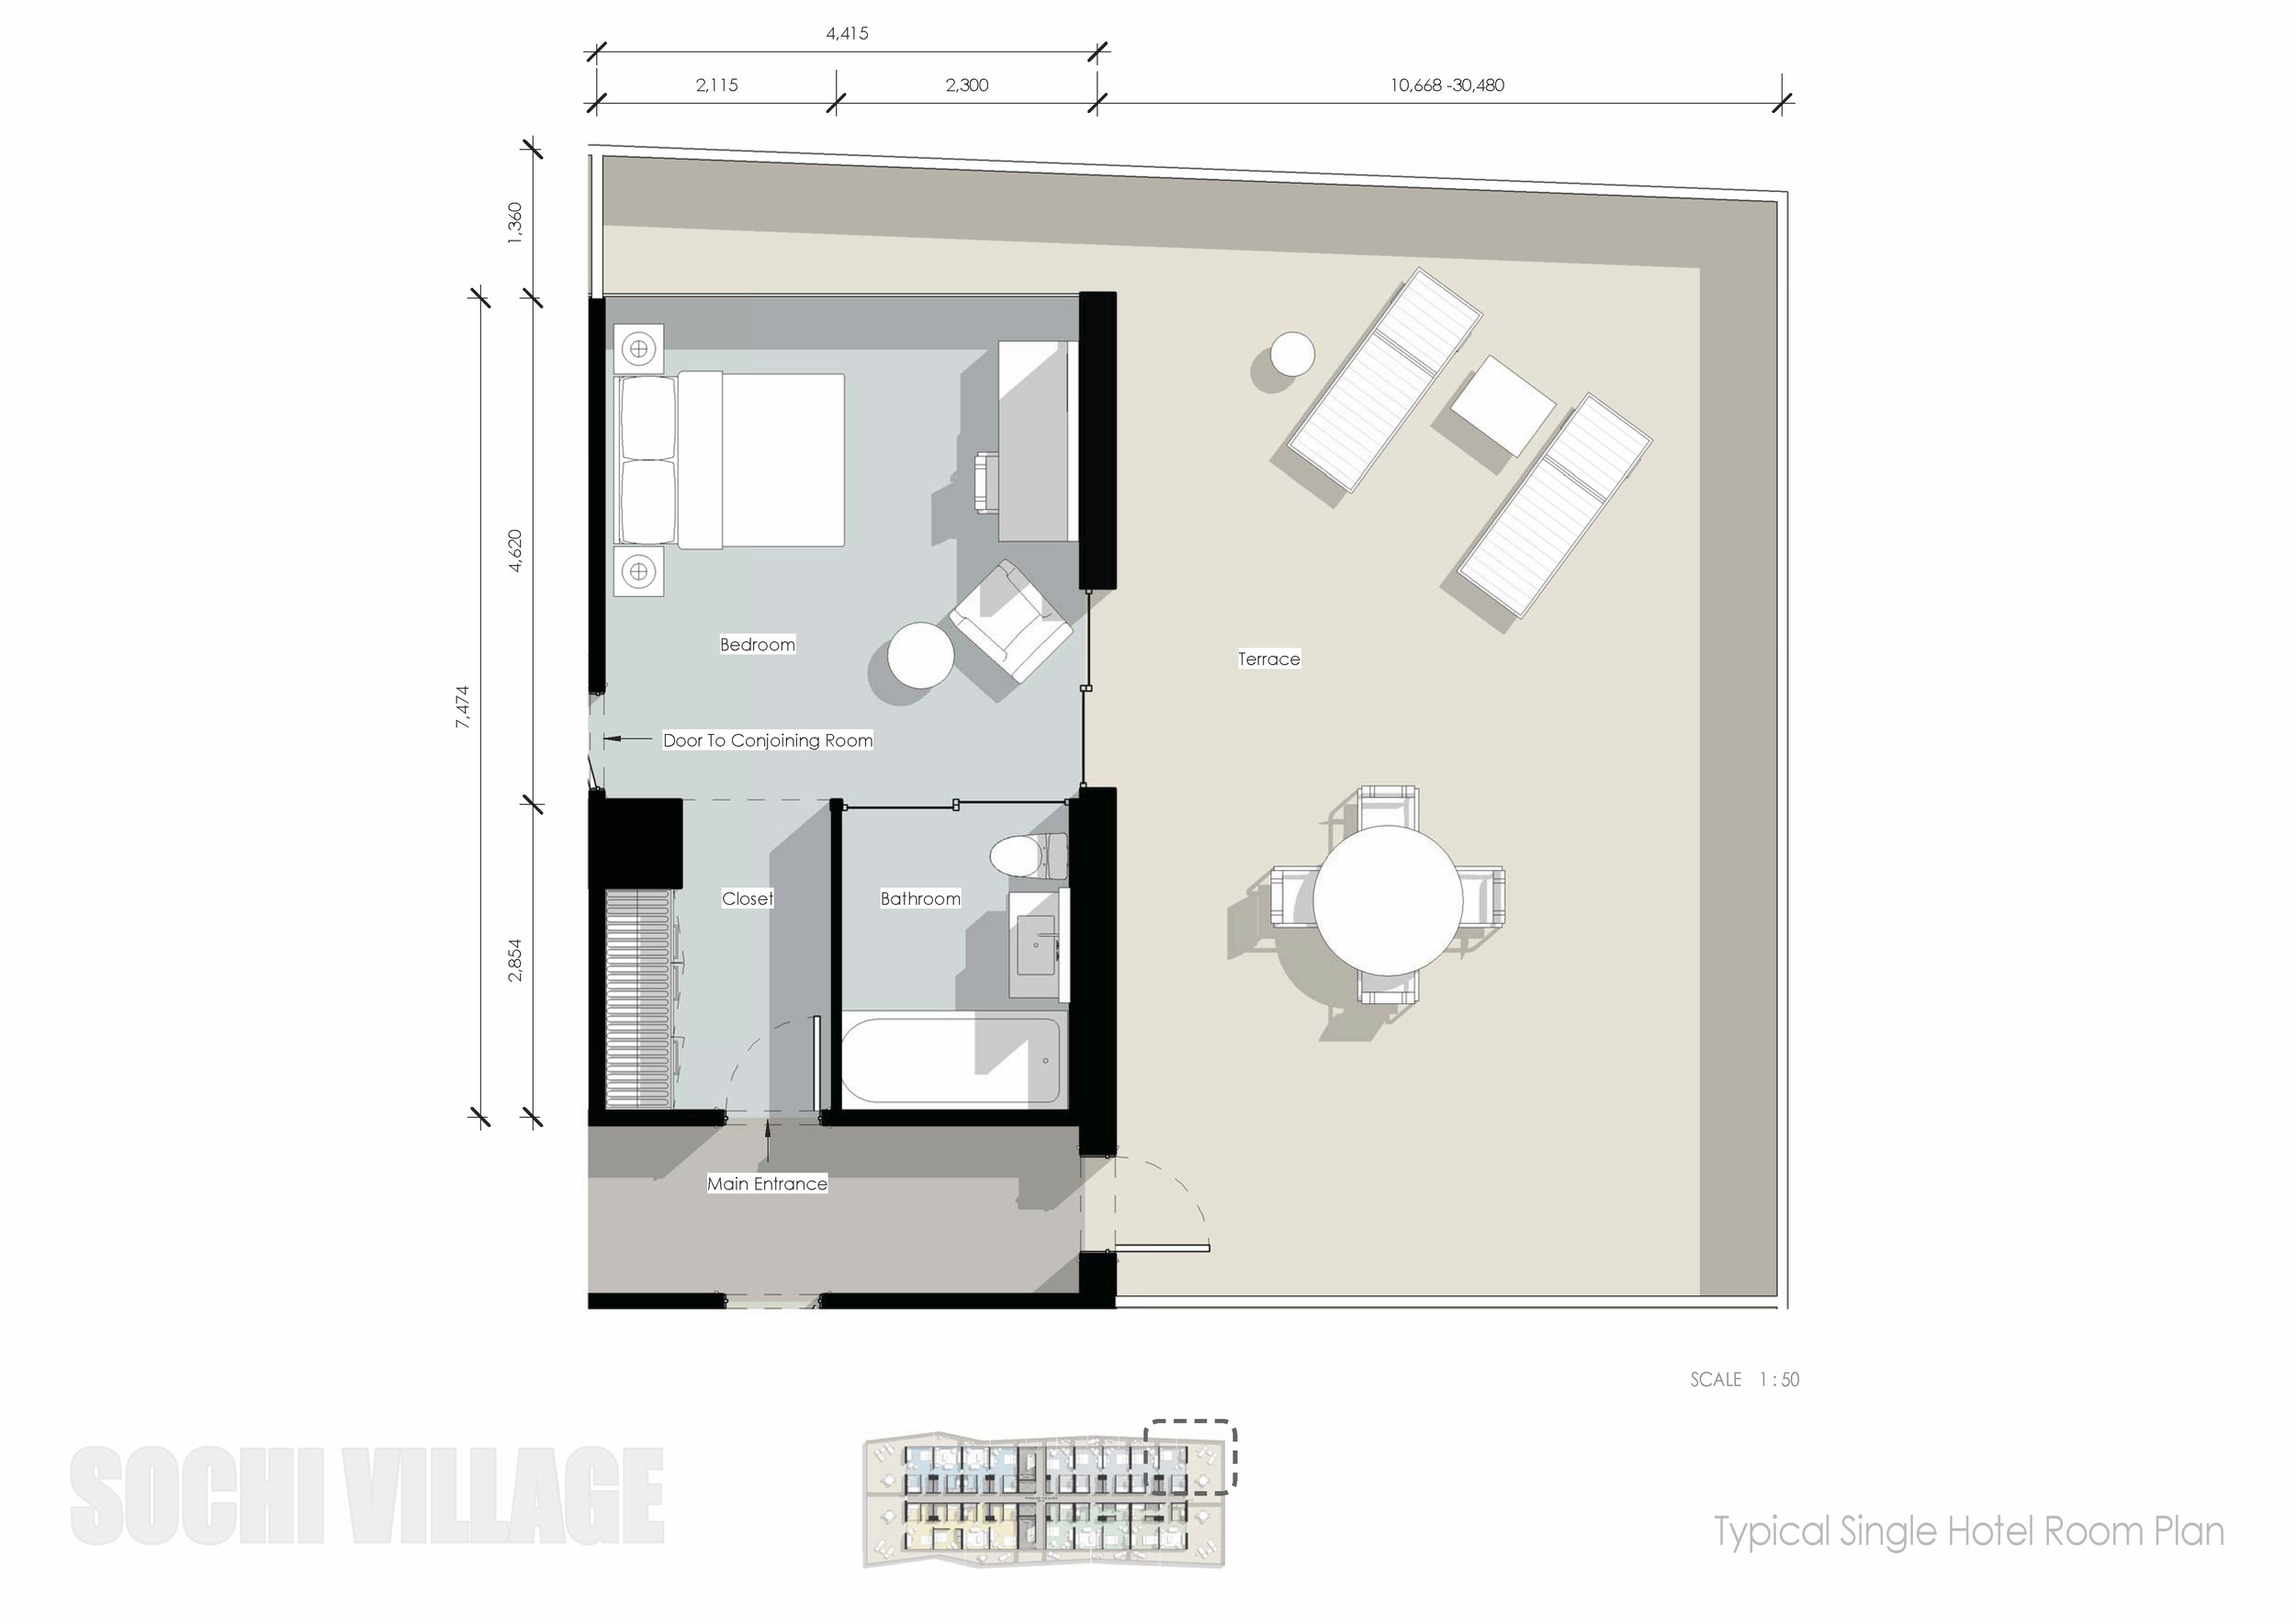 Sochi Olympic Village Typical Single Hotel Room Plan